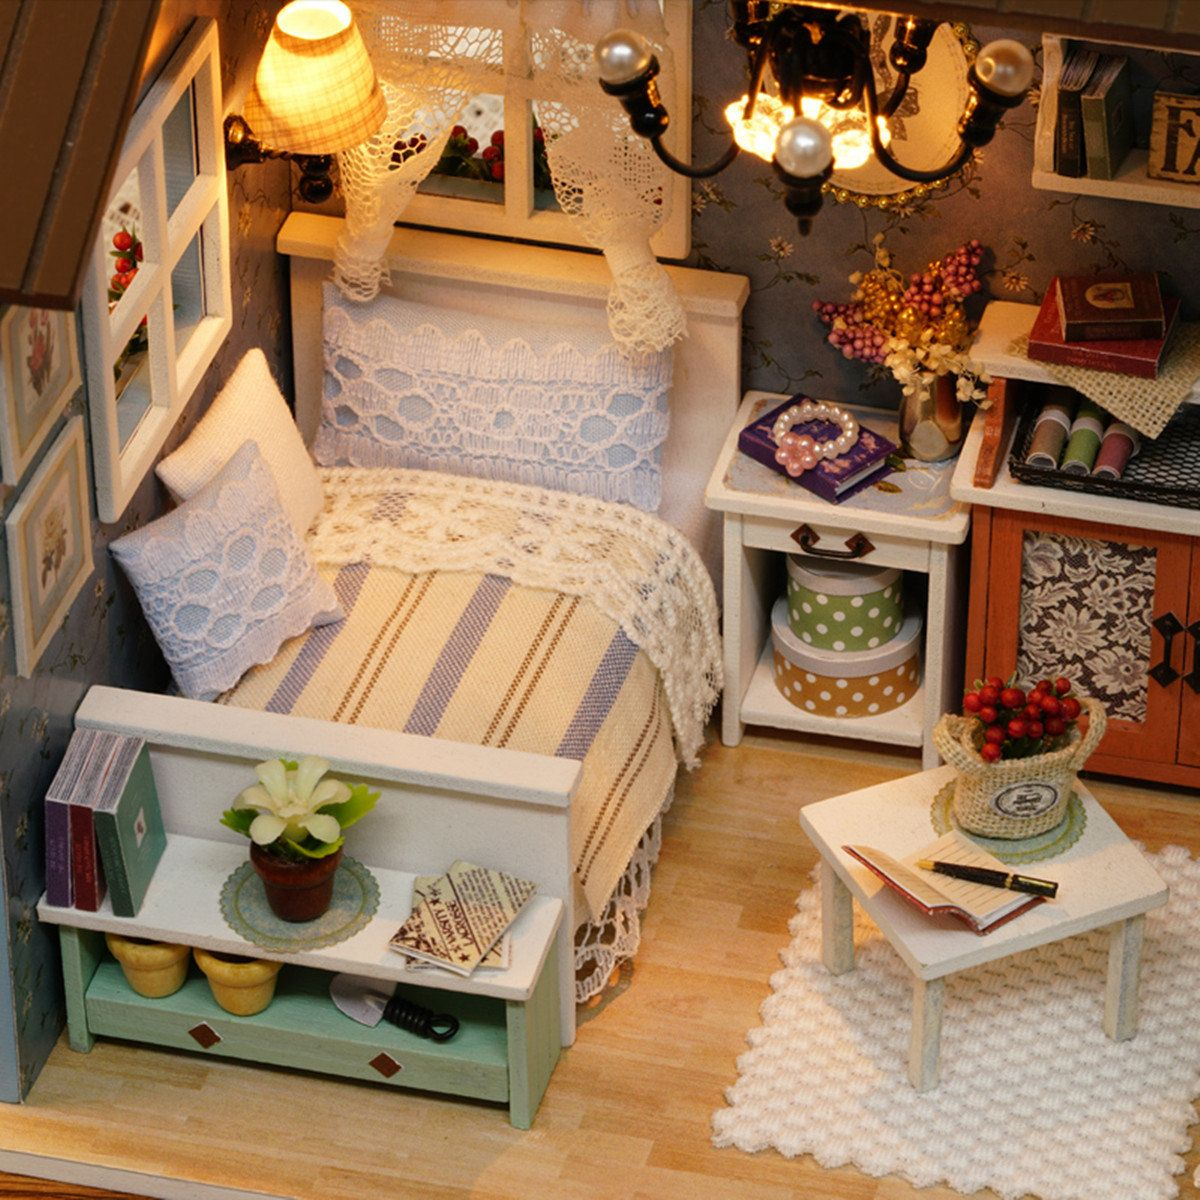 Cuteroom wooden kids doll house with furniture staircase led lights